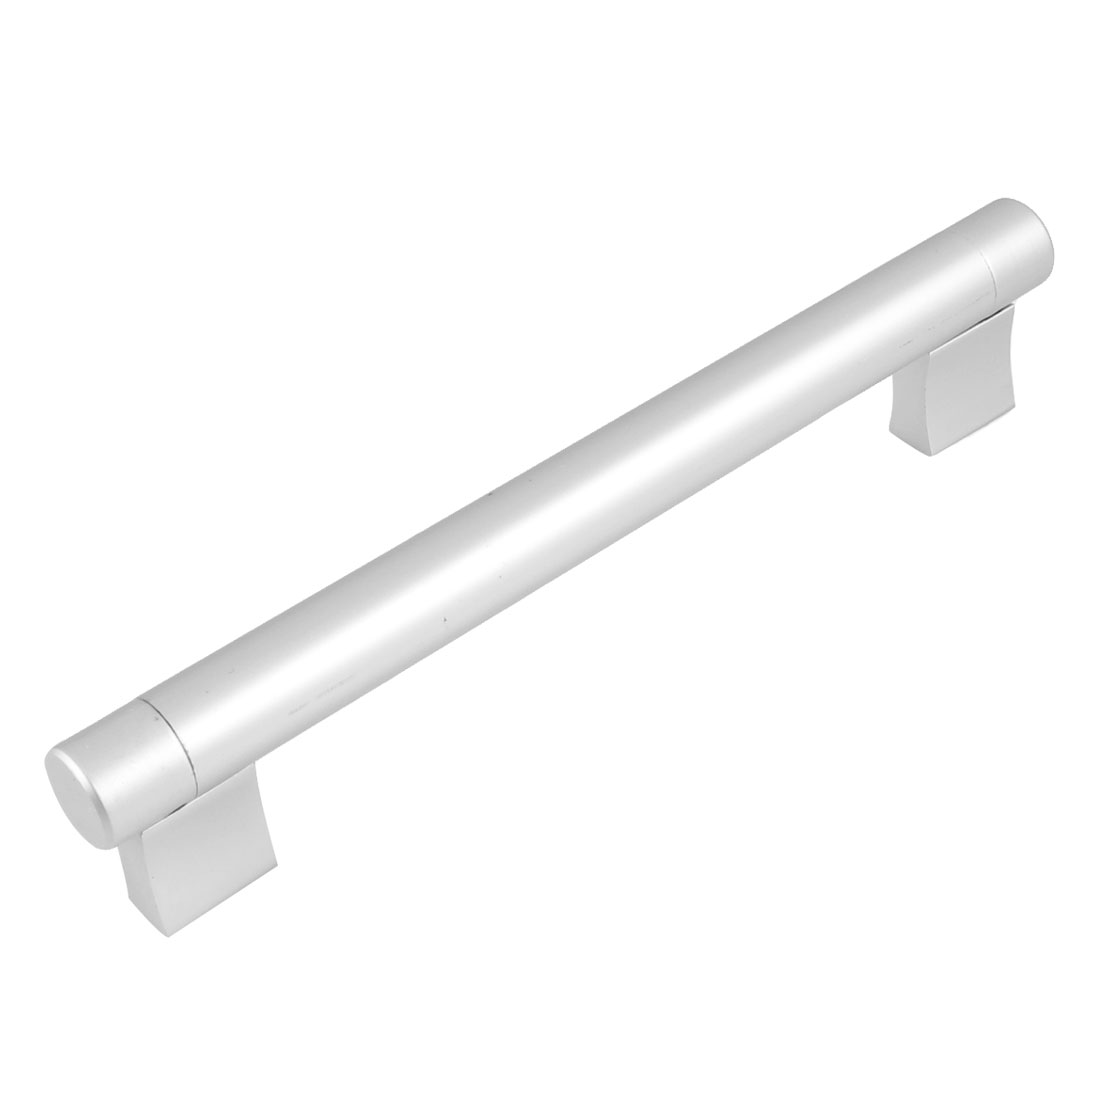 "Cupboard Screw Fix Silver Tone Aluminum 7.2"" Length Round Pull Handle"